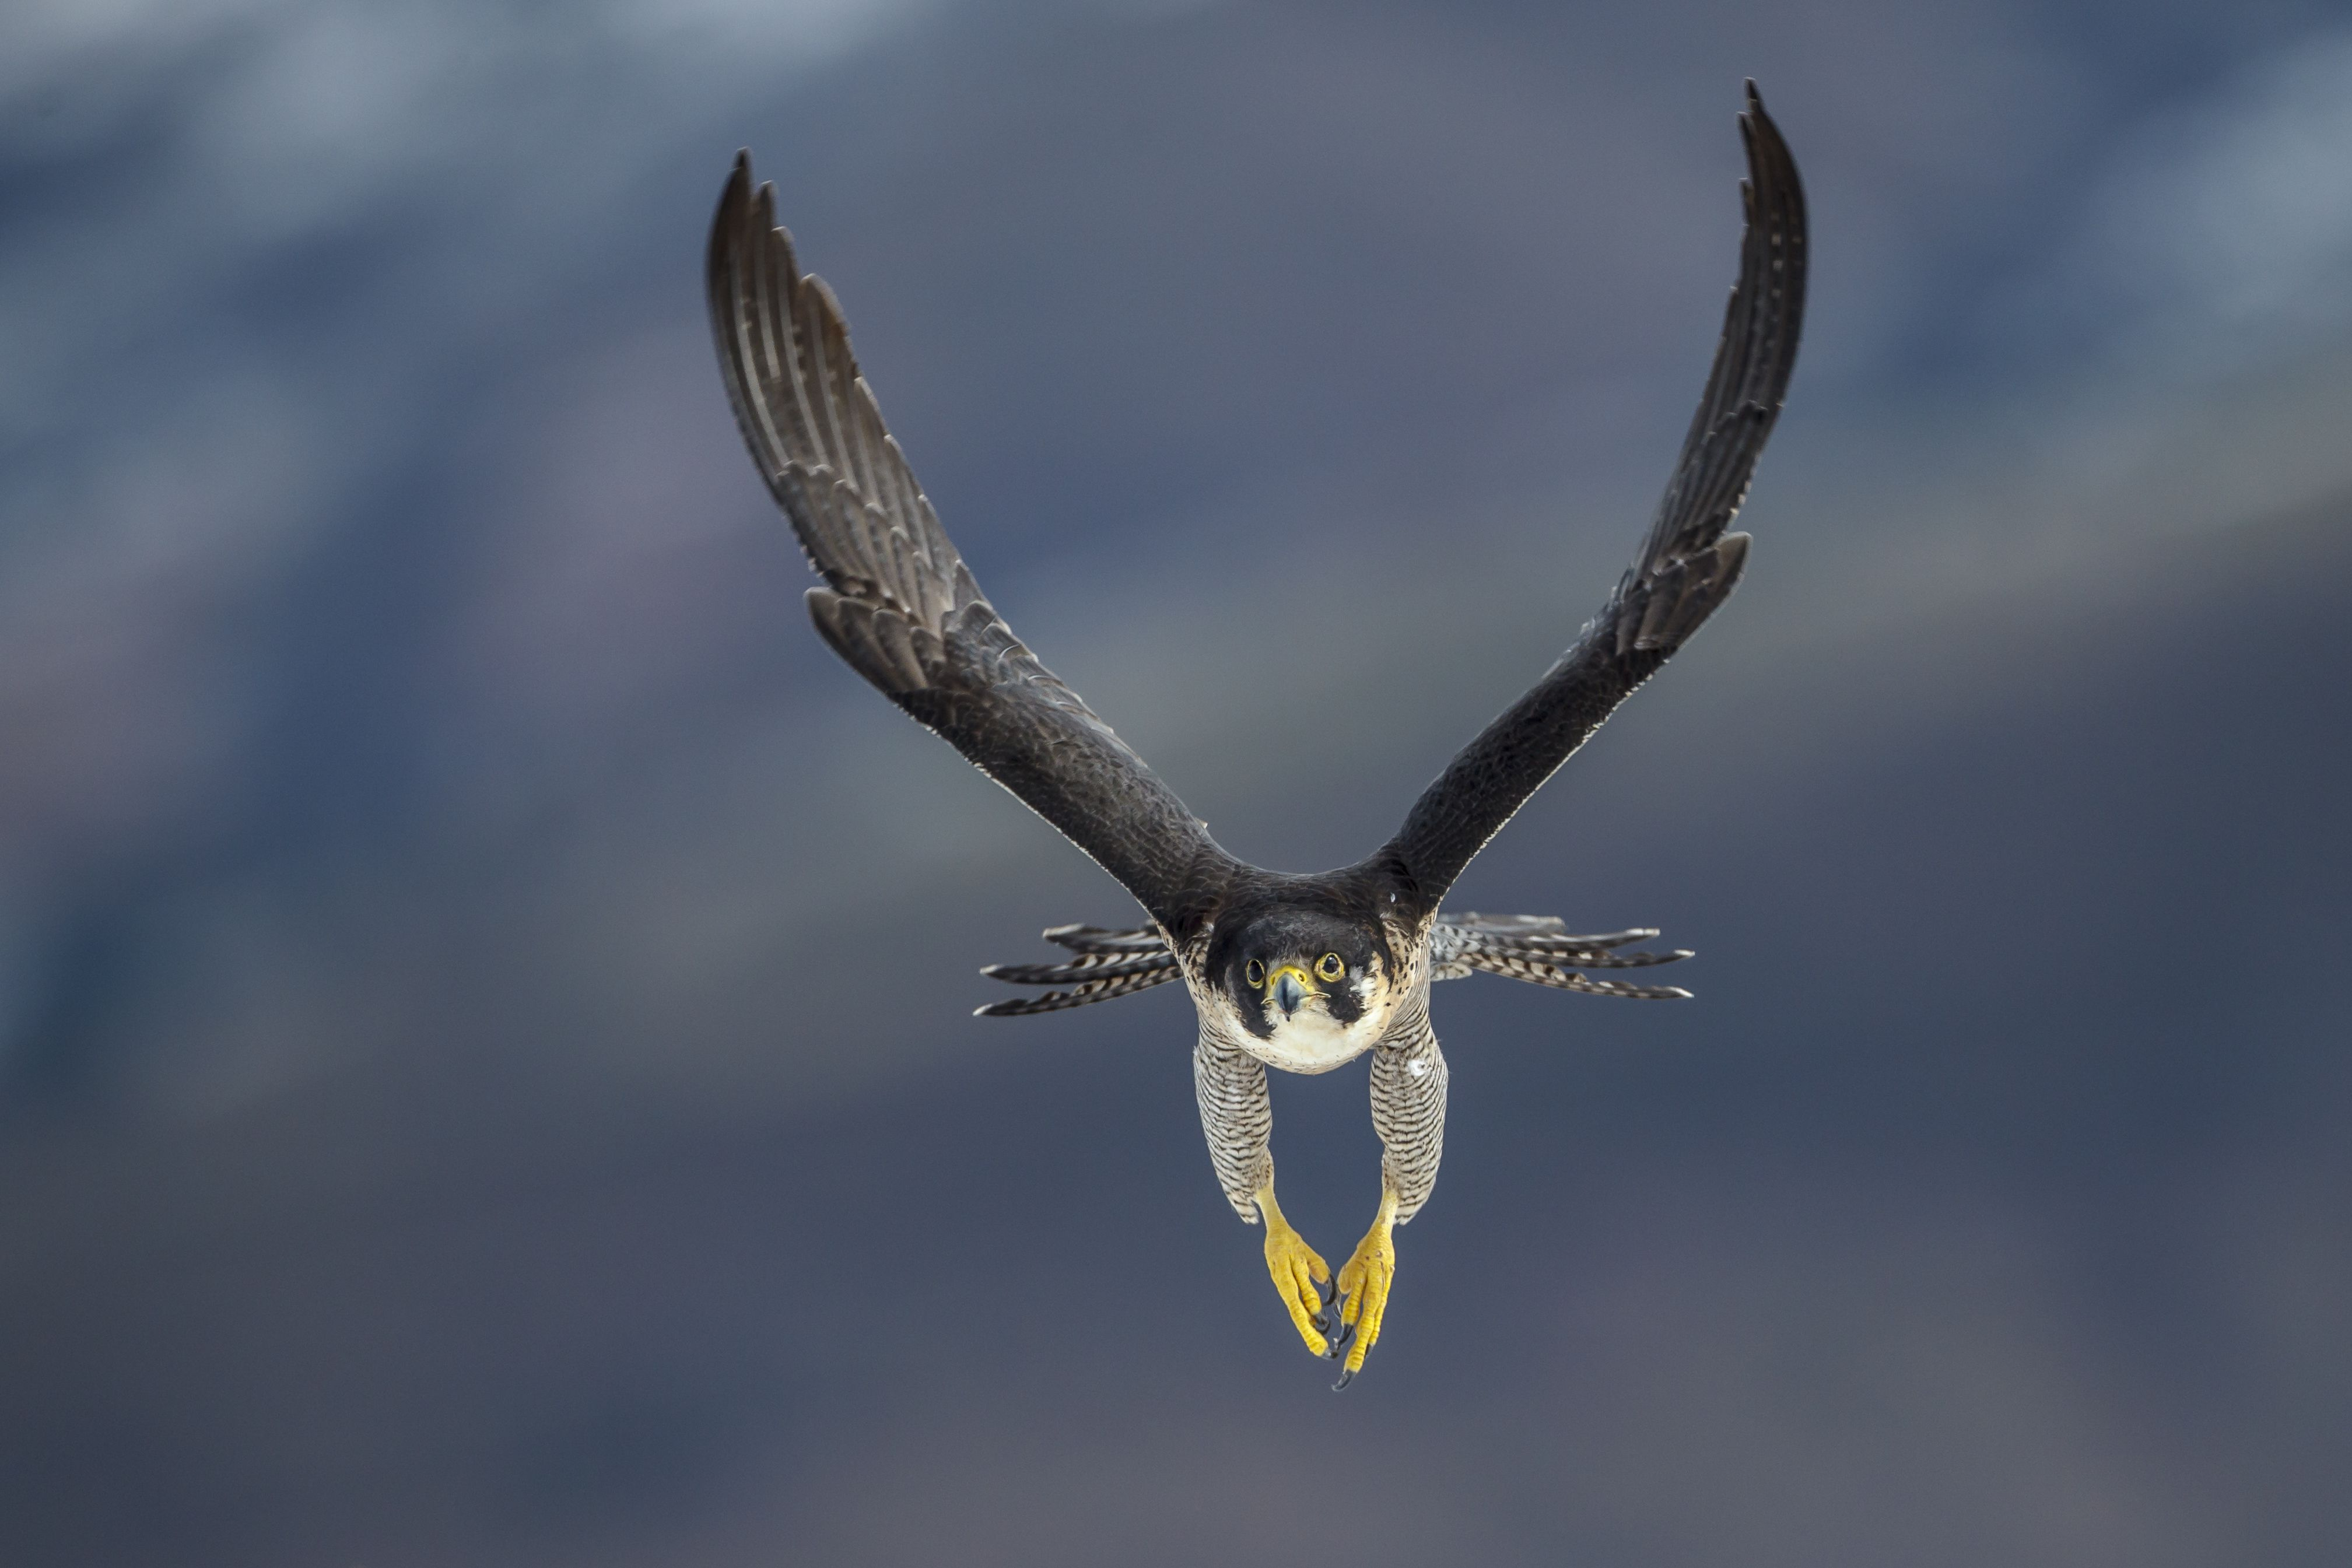 10 of the World's Fastest Birds